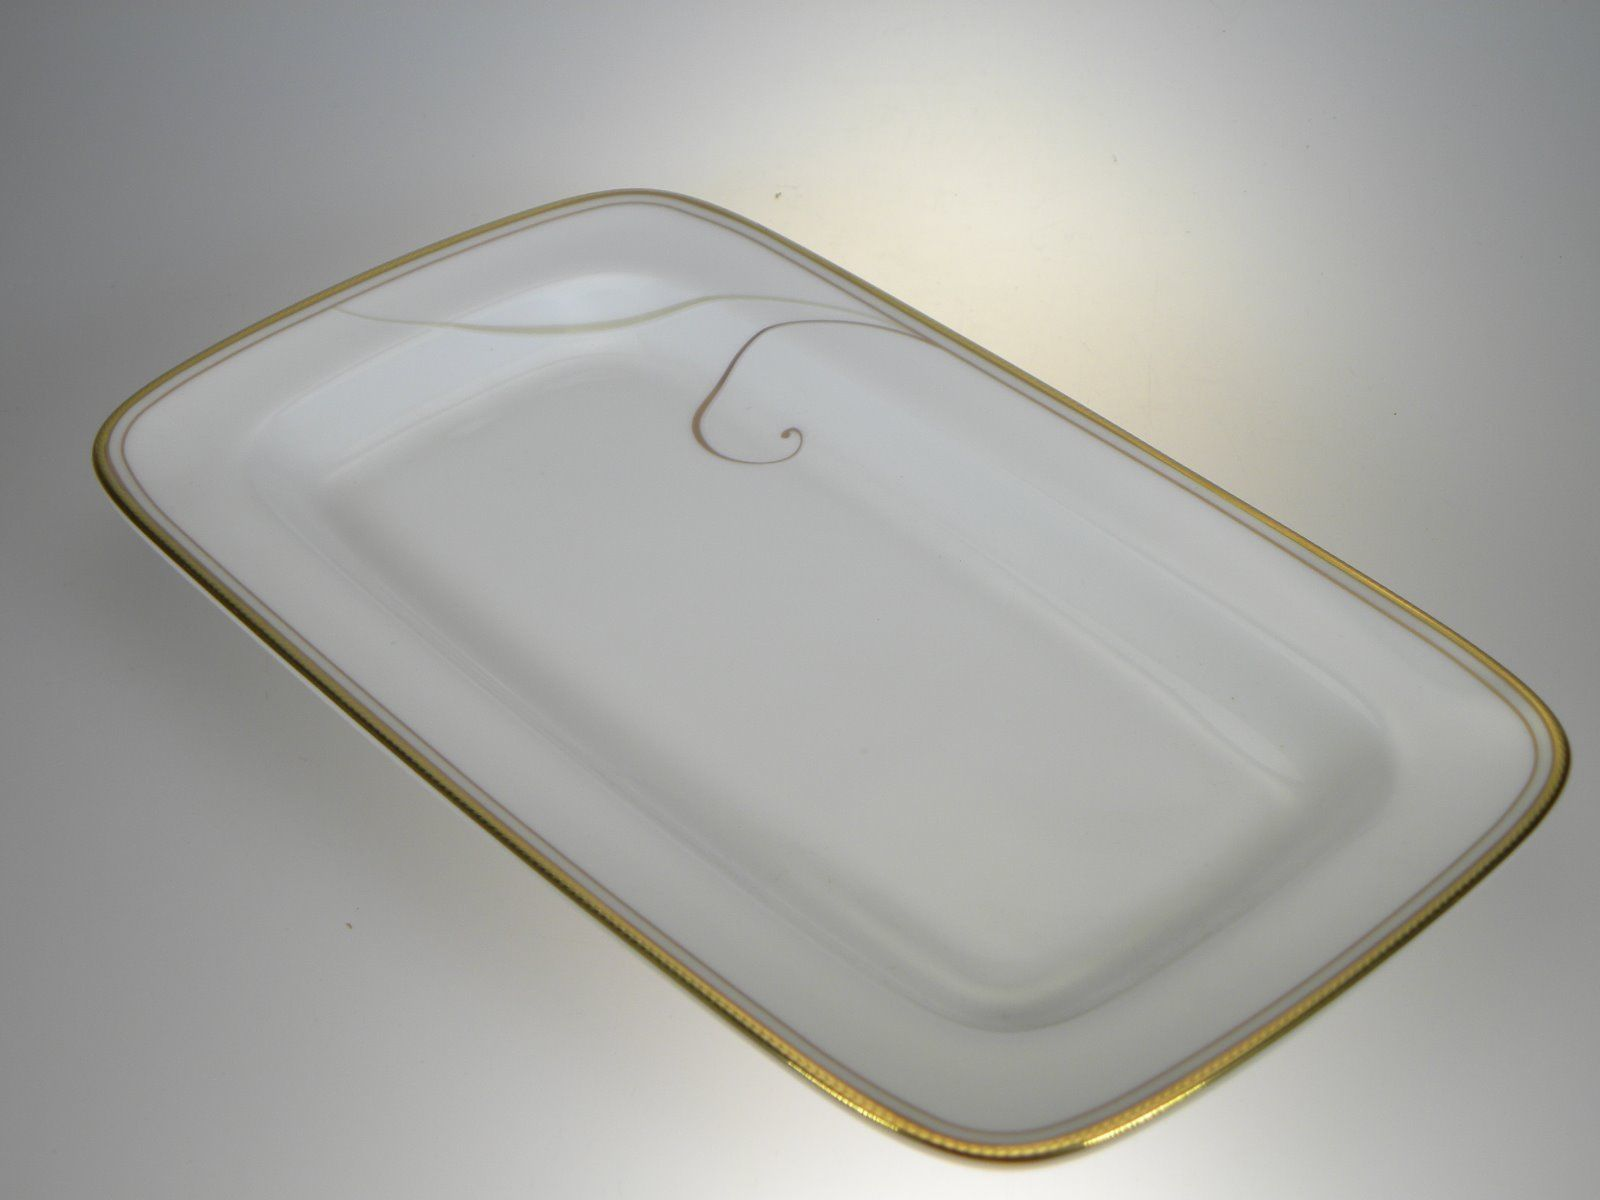 Noritake Golden Wave Butter or Relish Tray and 25 similar items